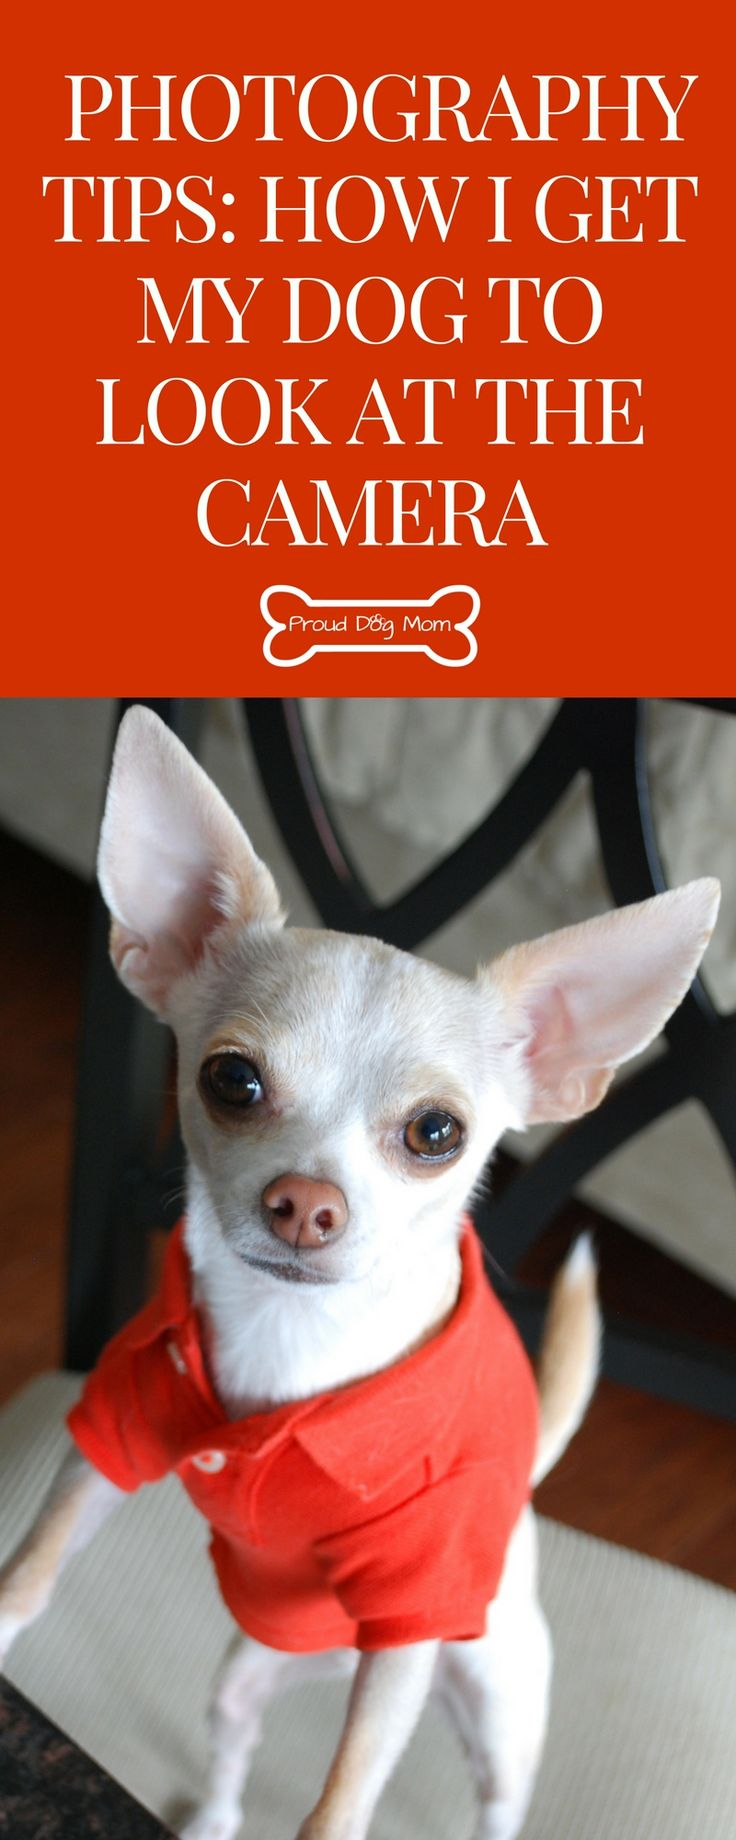 Dog Photography Tips: How I Get My Dogs To Look At The Camera